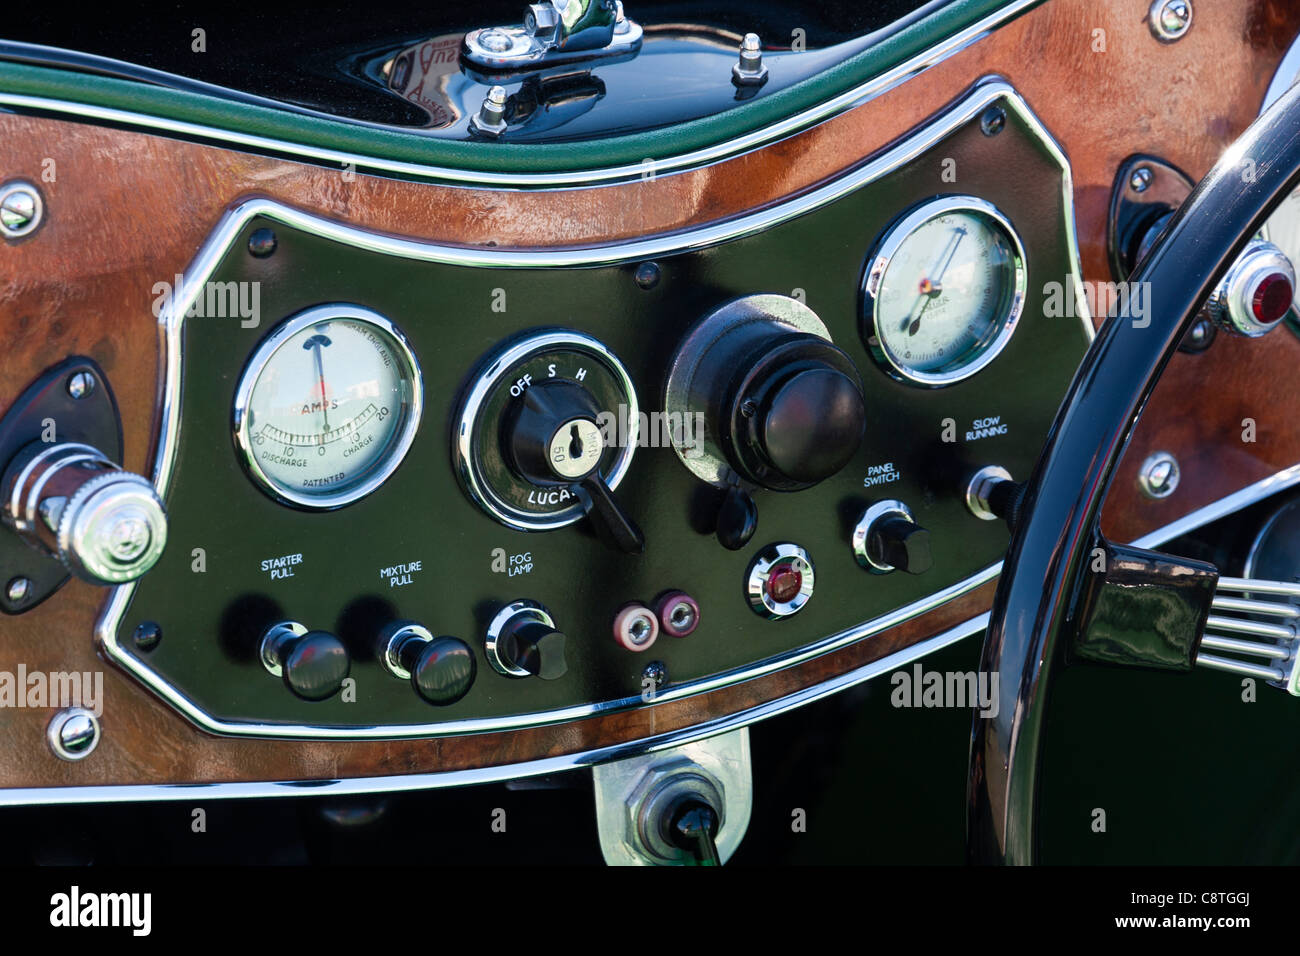 England Vintage Classic Car Austen Mg Dashboard With